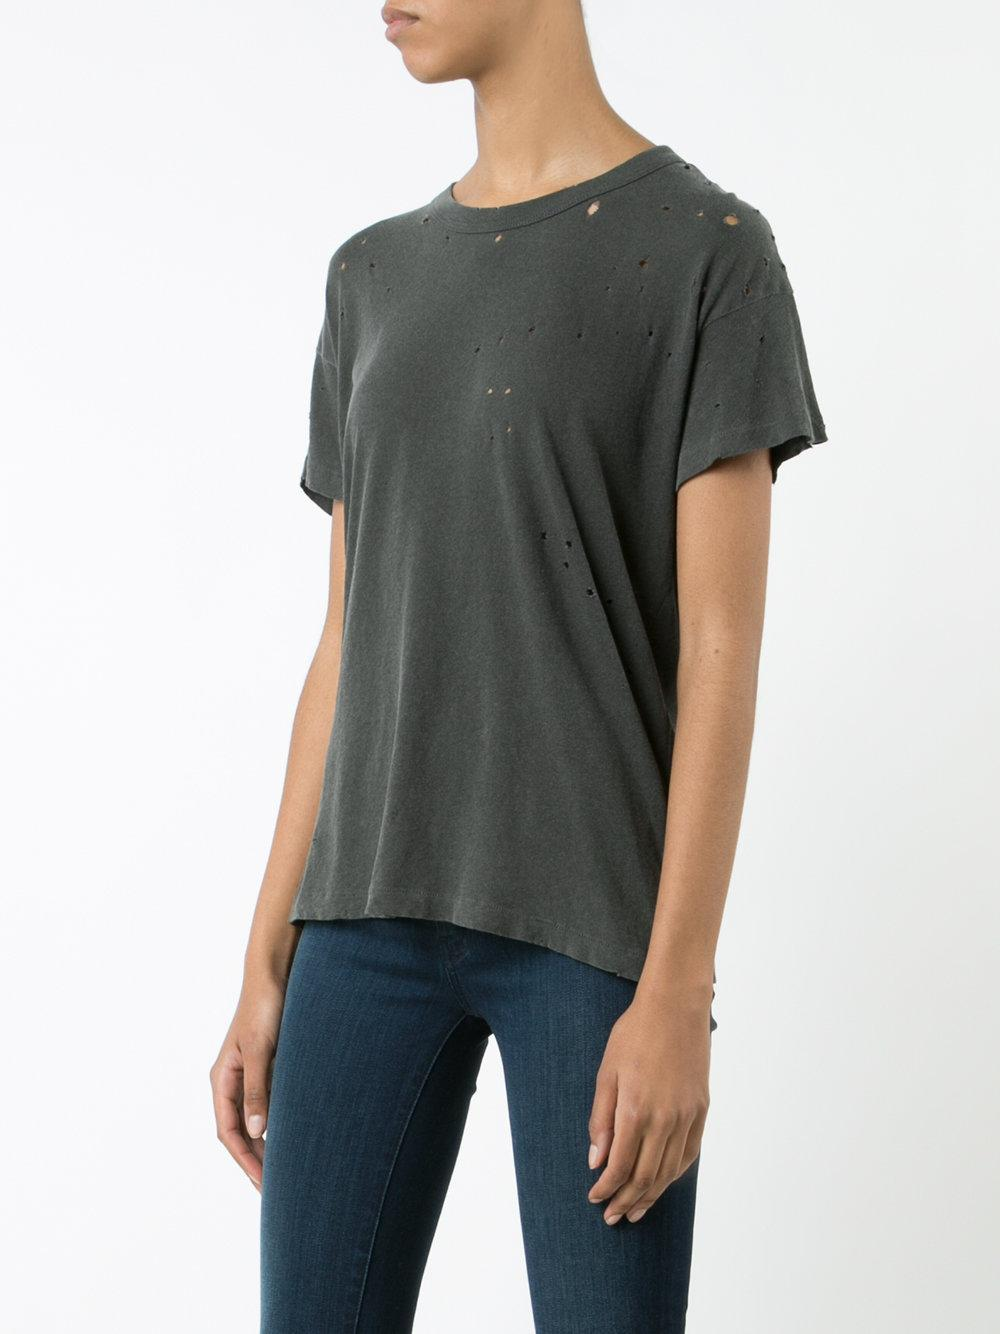 The Great Perforated Detail T Shirt Women Cotton 1: the great t shirt